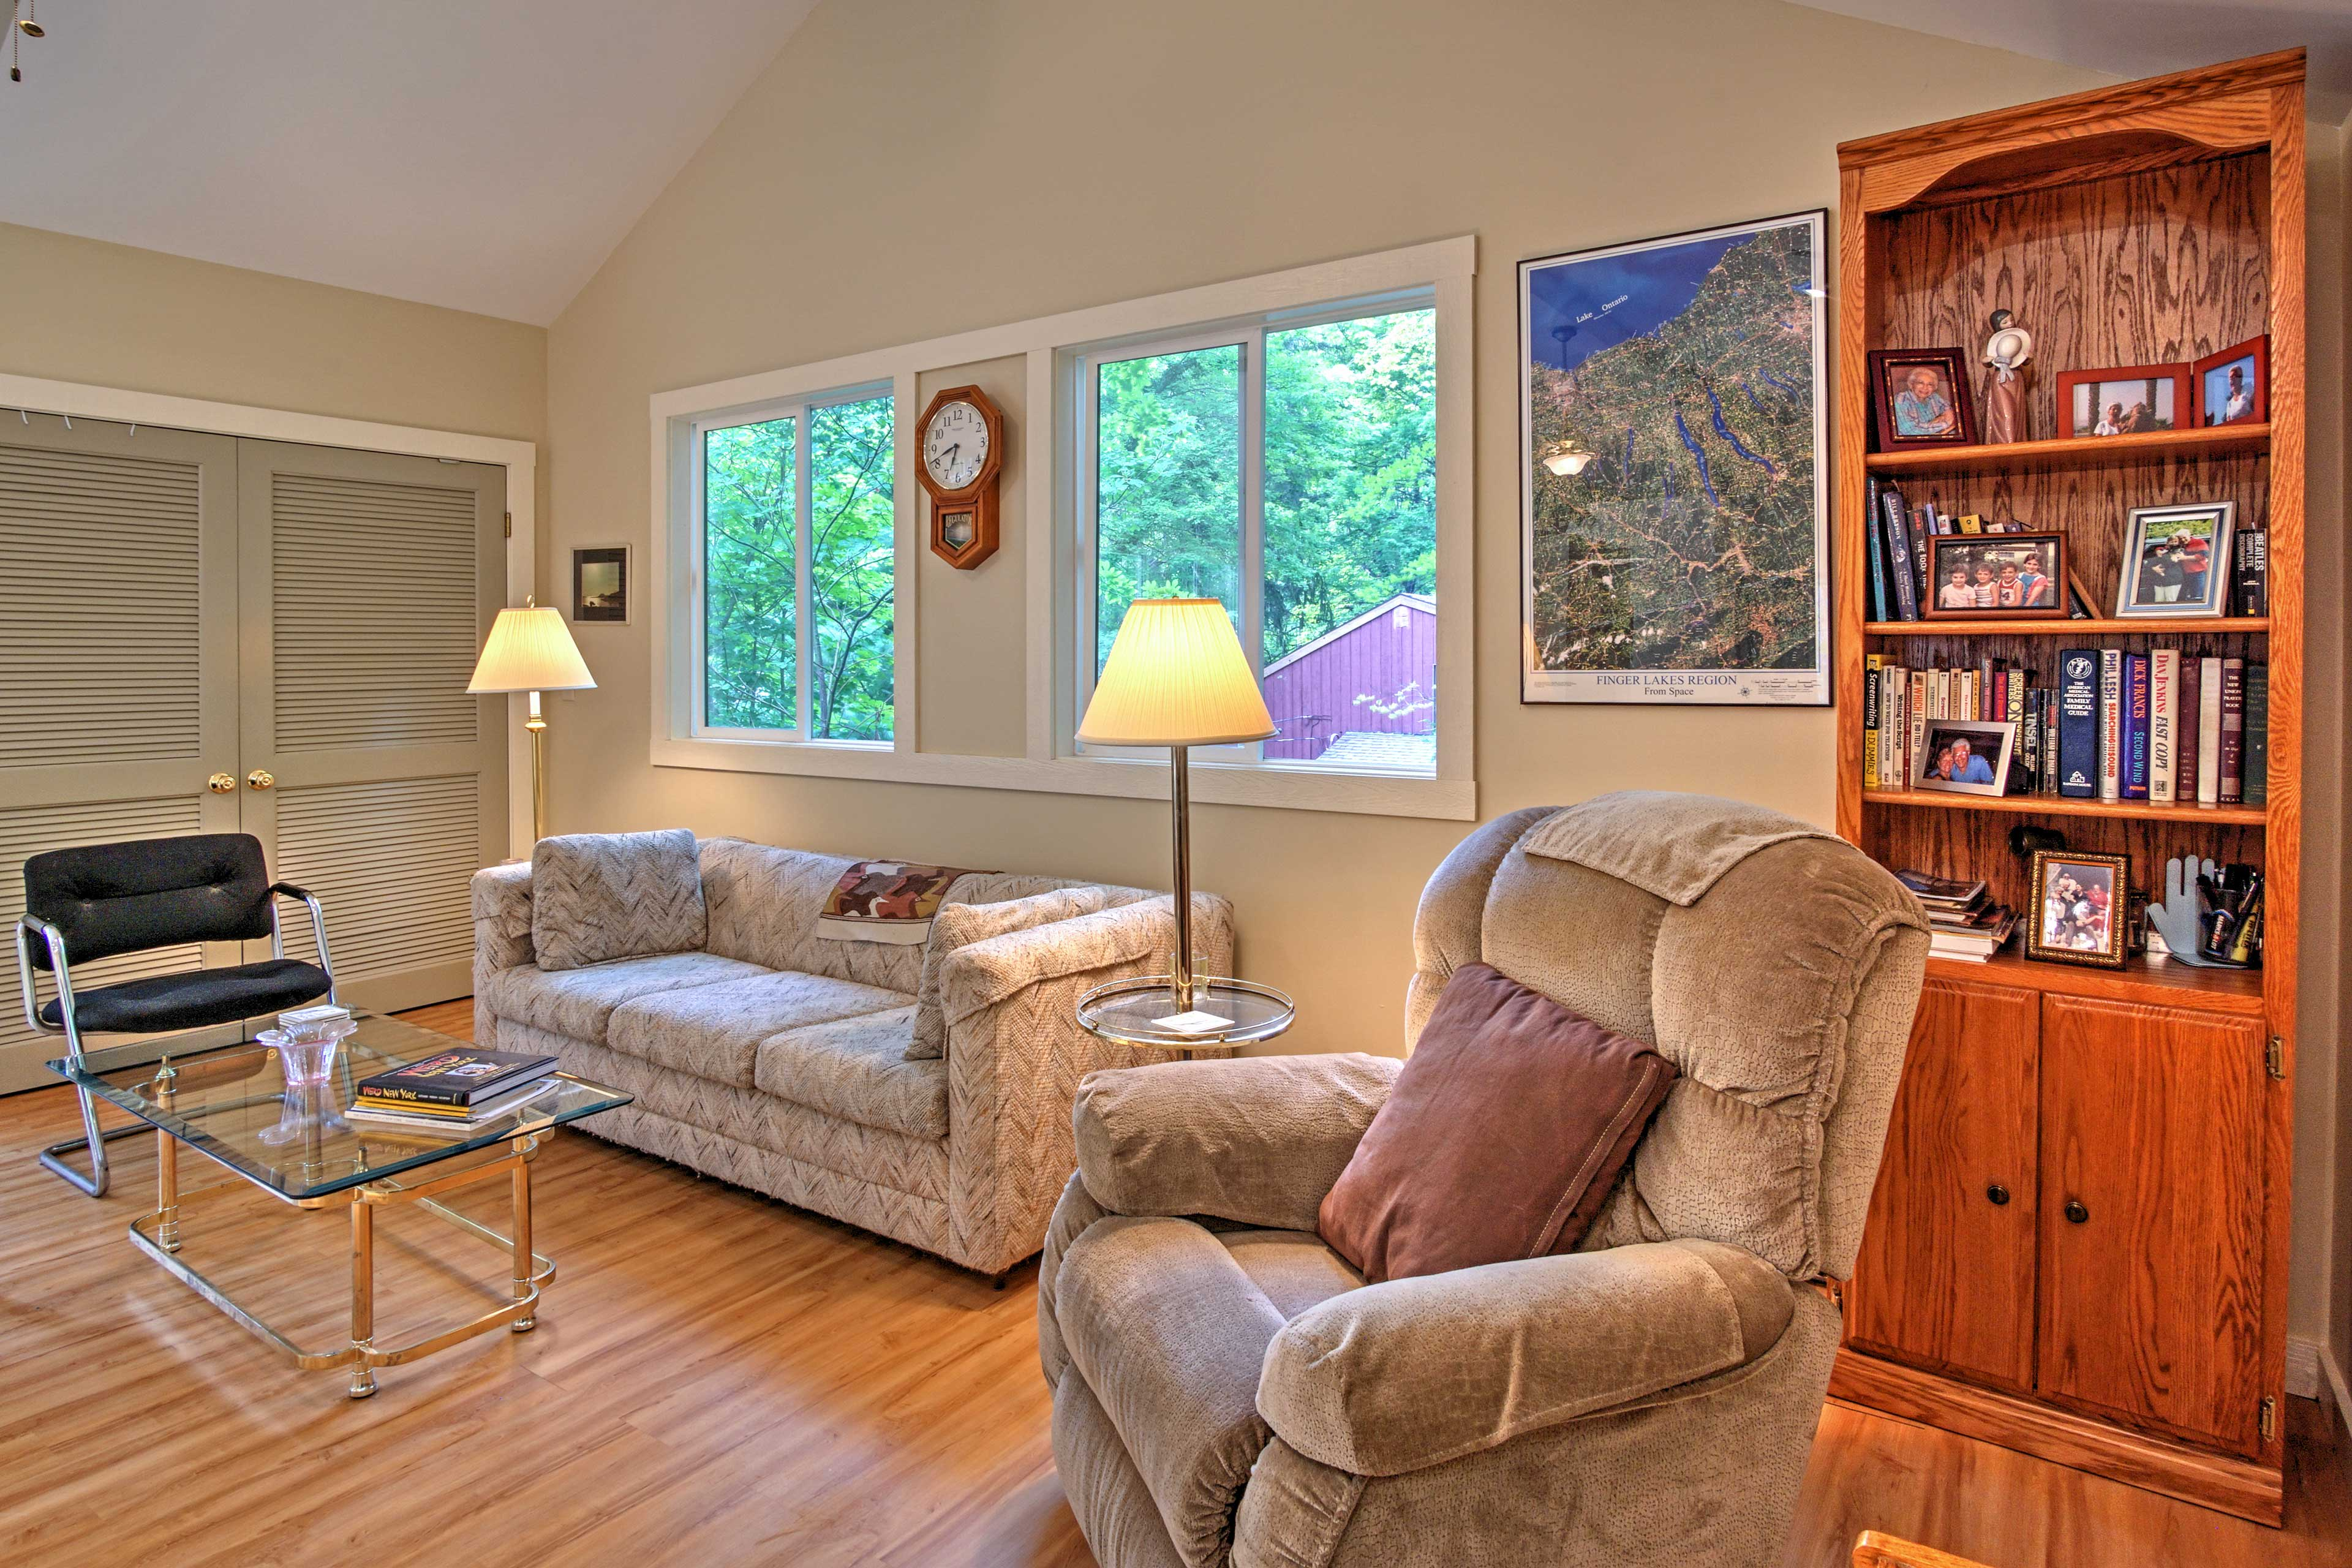 Relax in the living room with a good book.